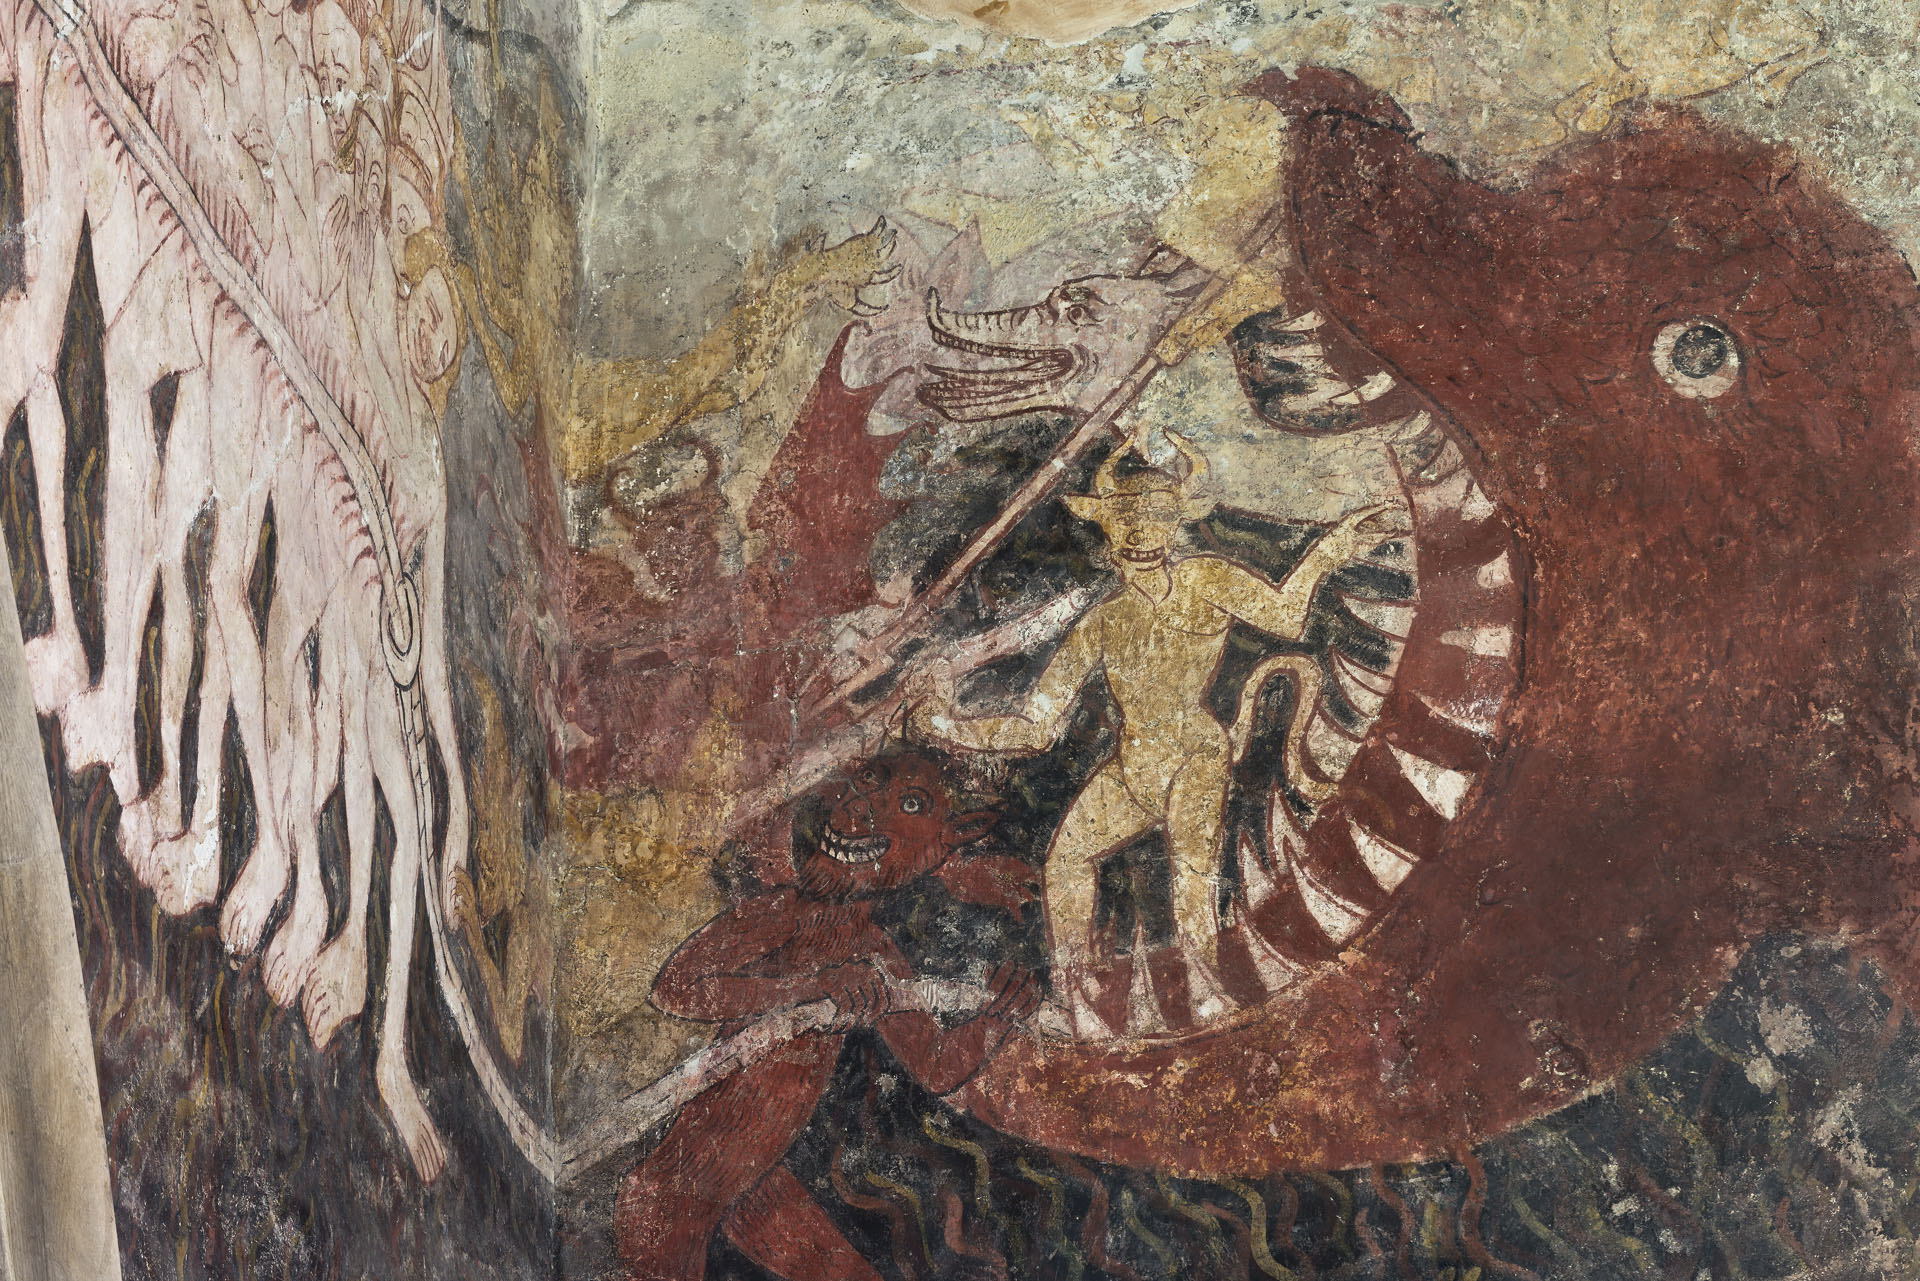 23. See historic wall paintings